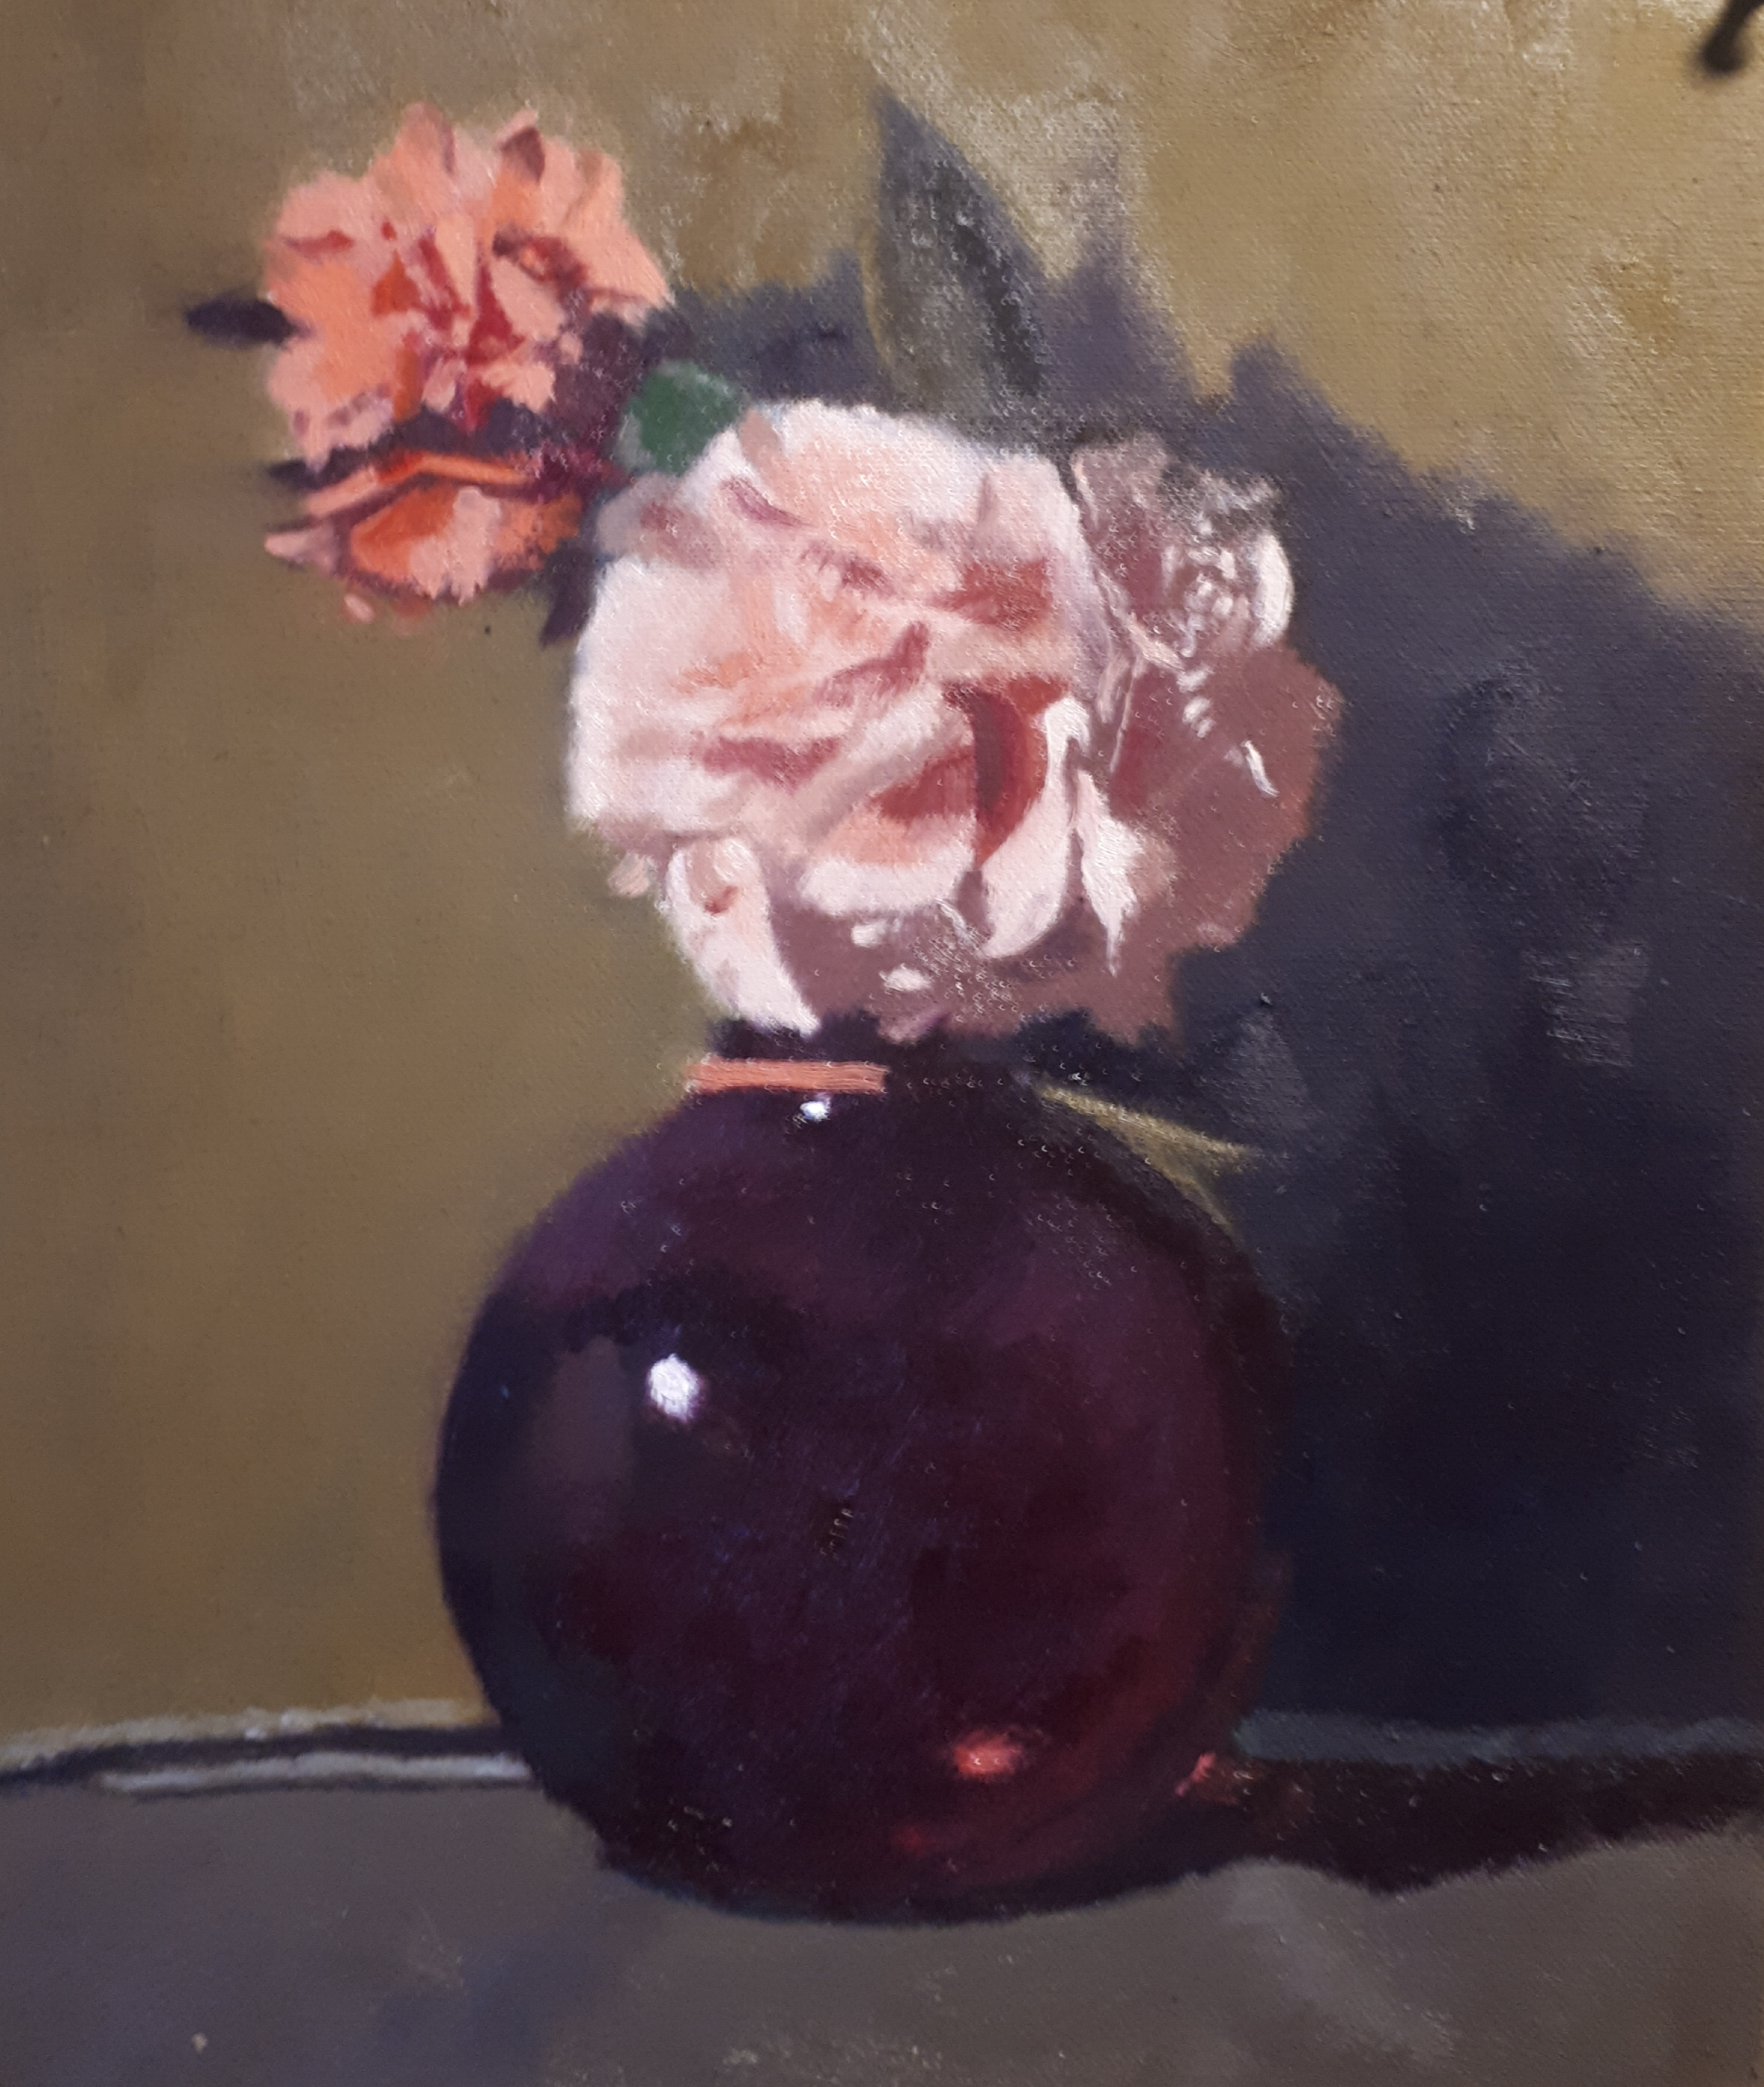 Flowers in Old Mauve Vase